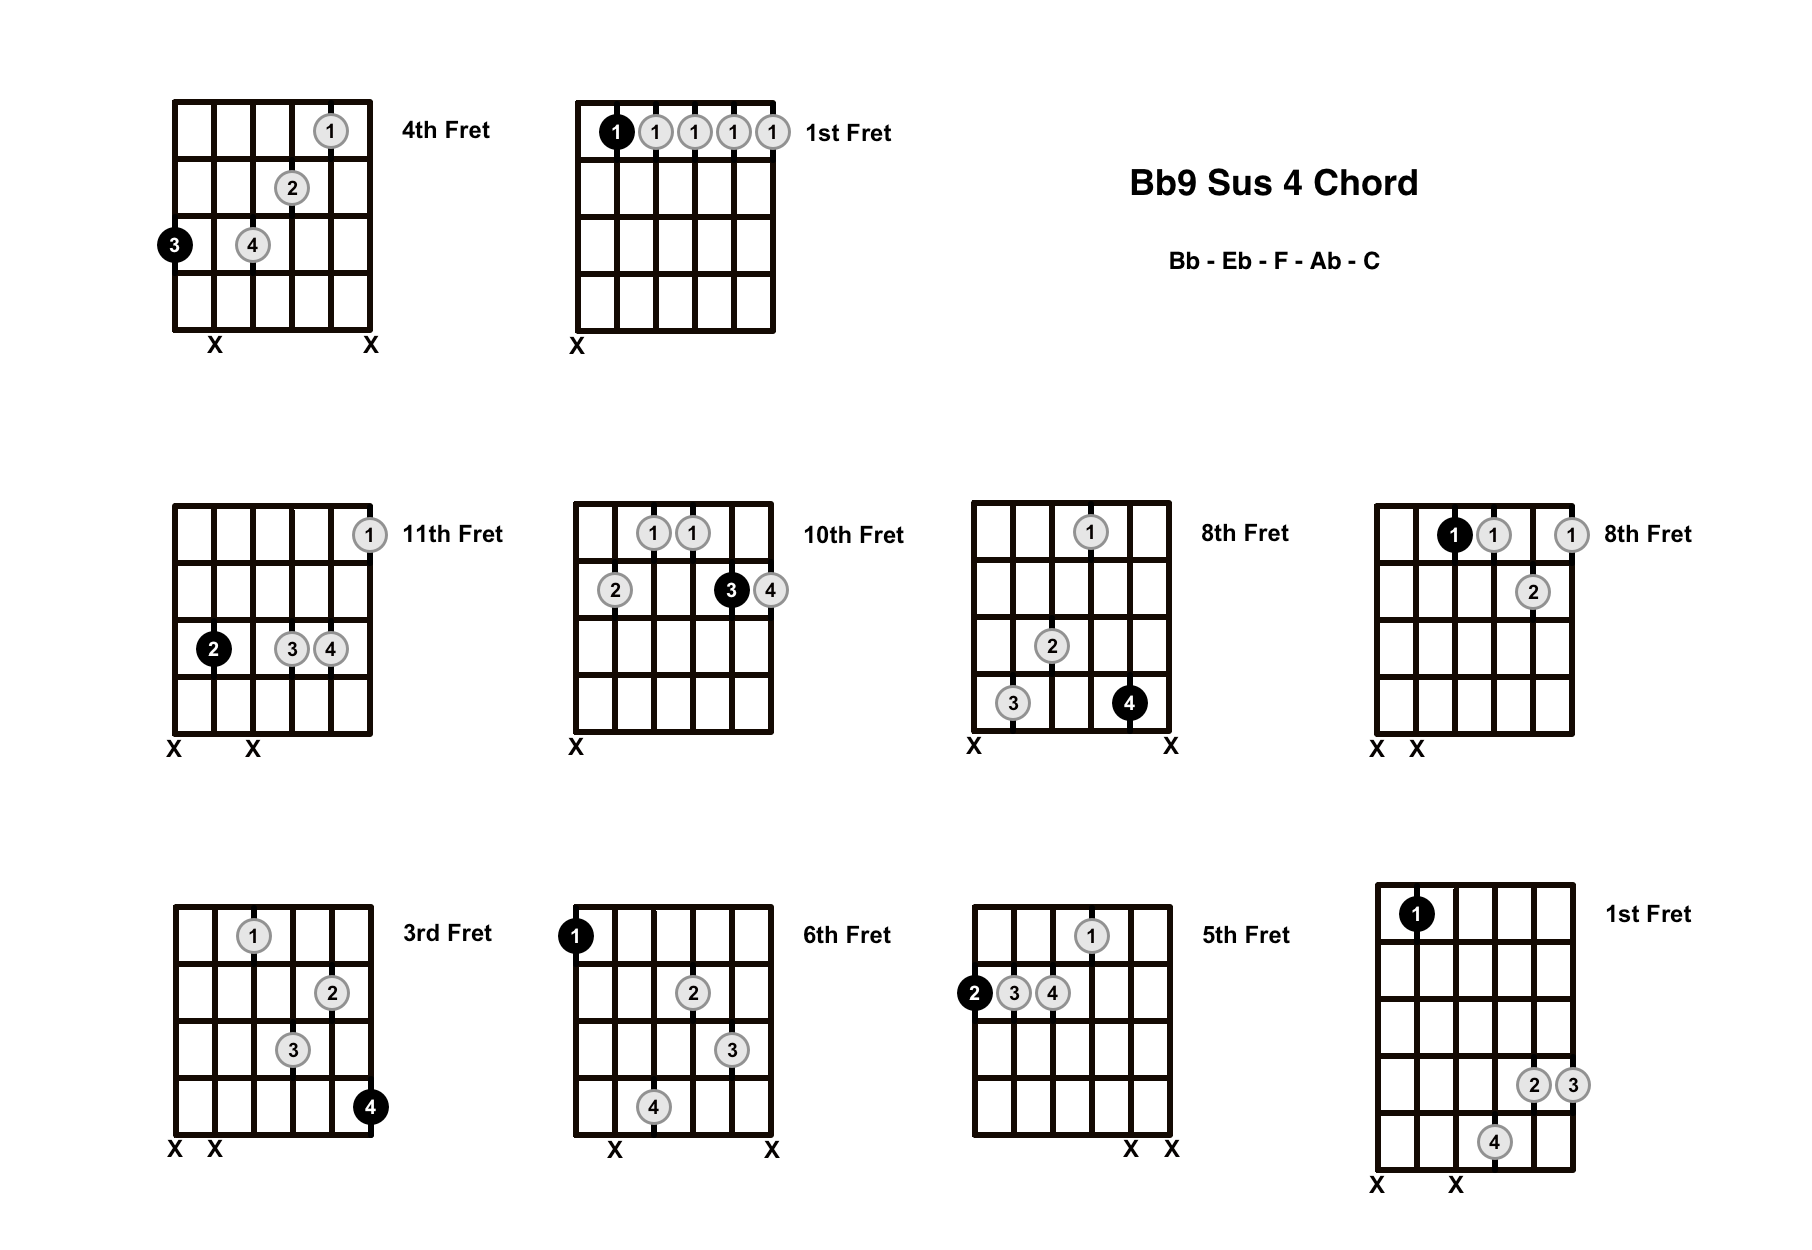 Bb9 Sus 4 Chord On The Guitar (B Flat 9 Suspended 4, Ab/Bb) – Diagrams, Finger Positions and Theory